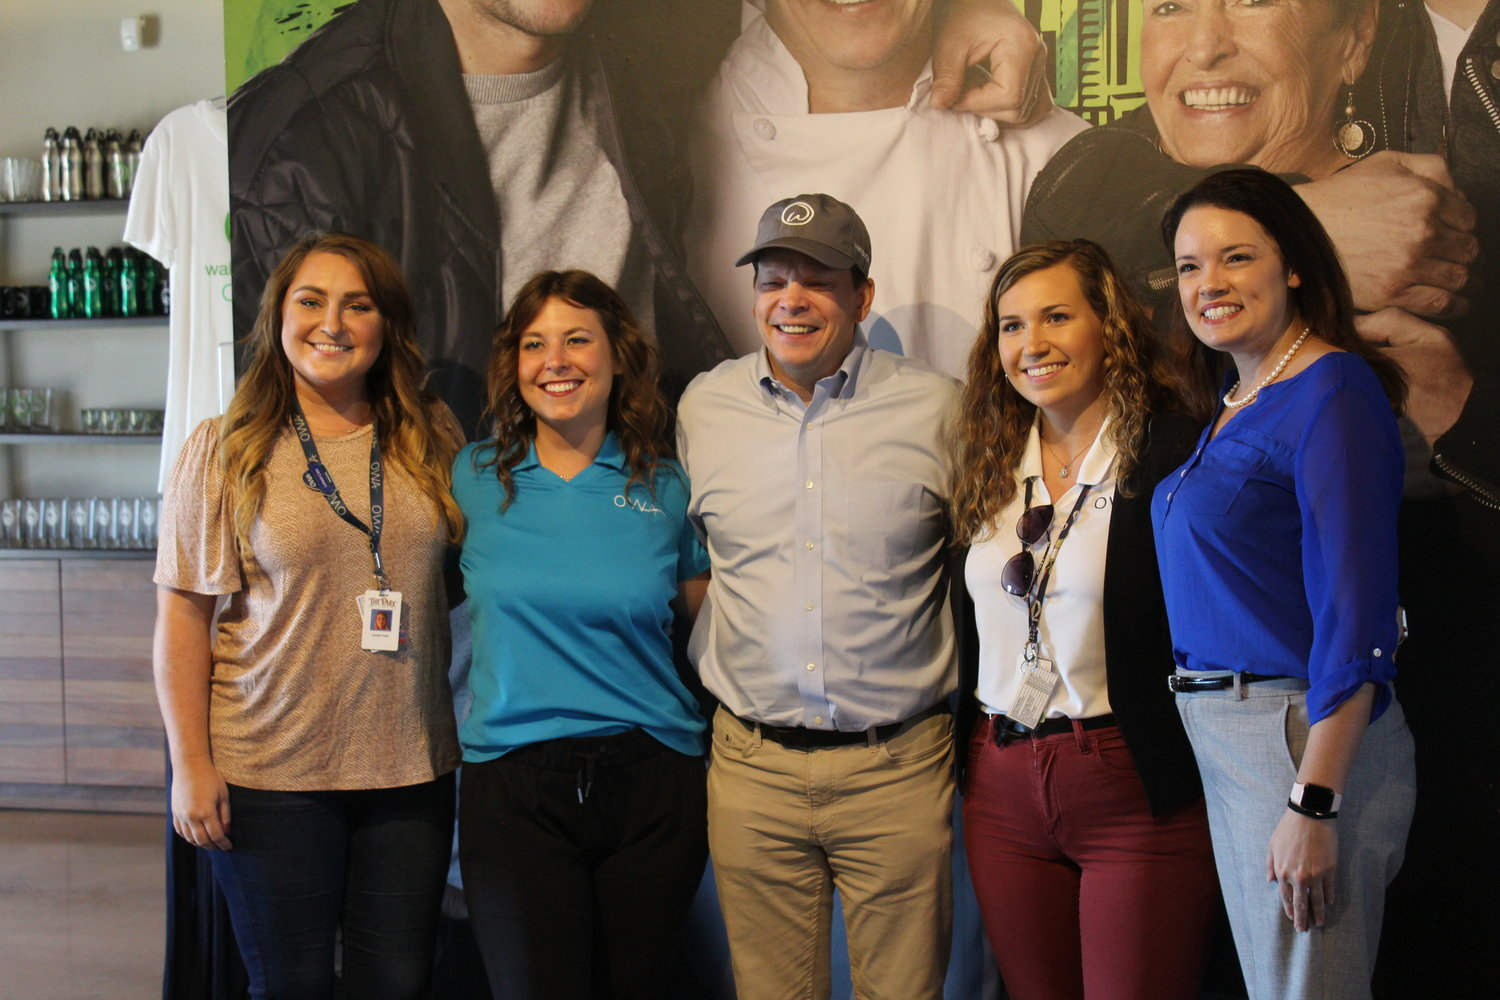 Paul Wahlberg visits the OWA Wahlburgers location.